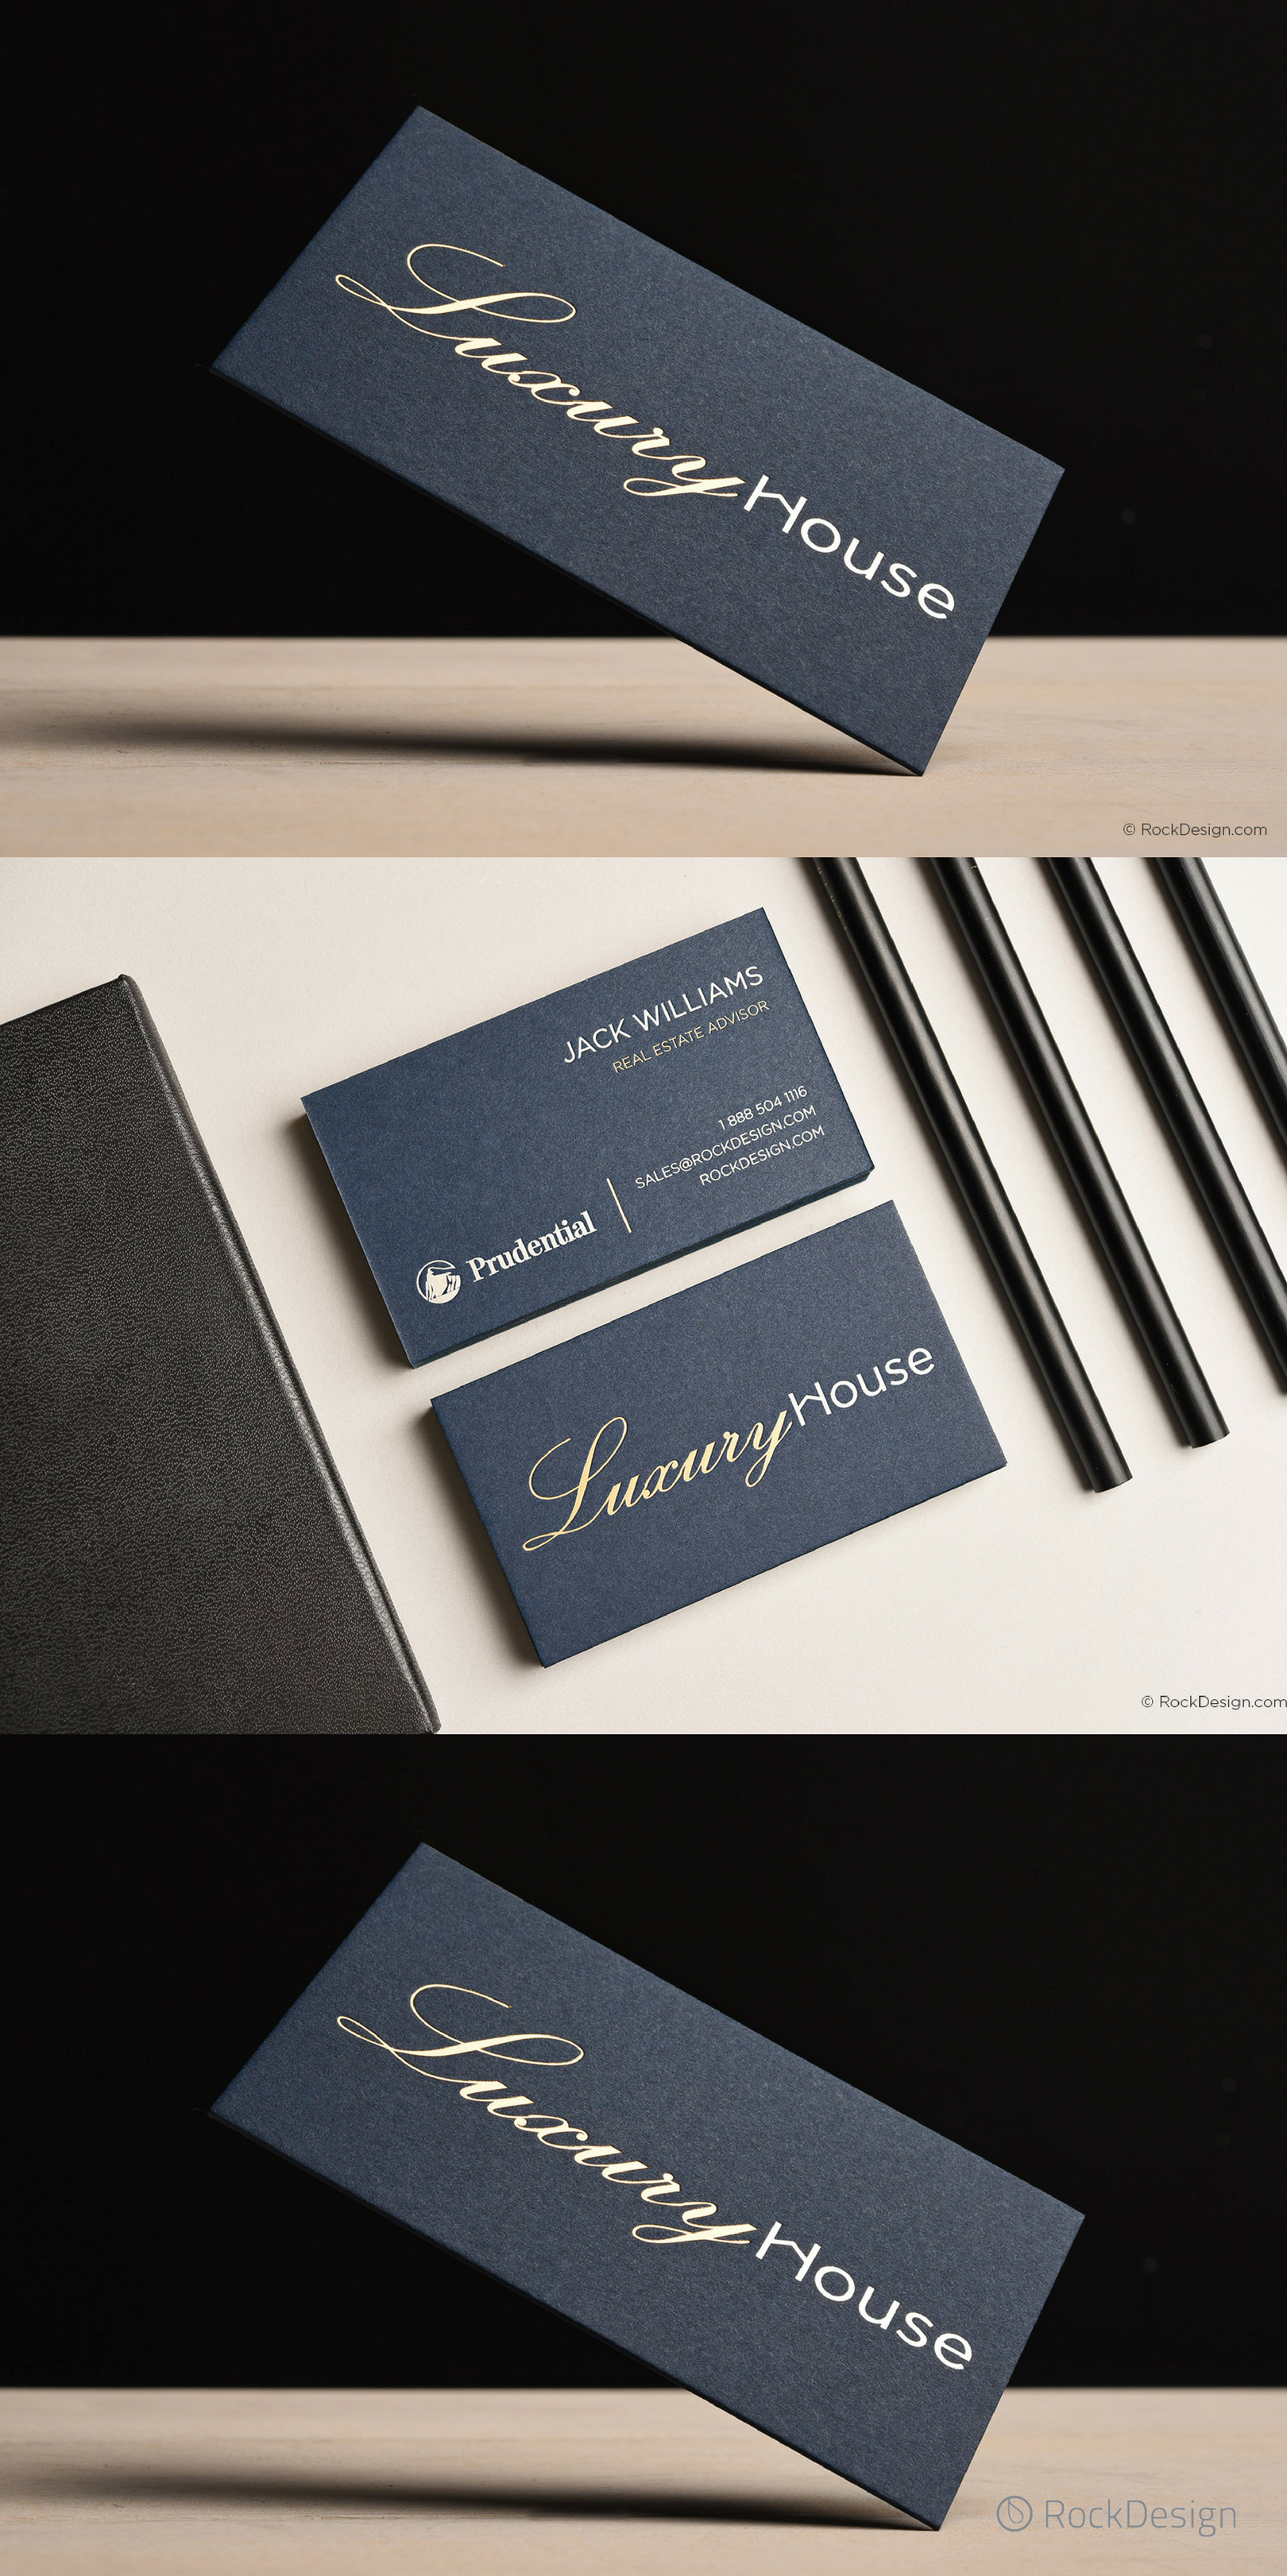 Pin By Michelleanne On Ref Exec Search Firm Mktg Bs Cards Foil Business Cards Luxury Business Cards Card Templates